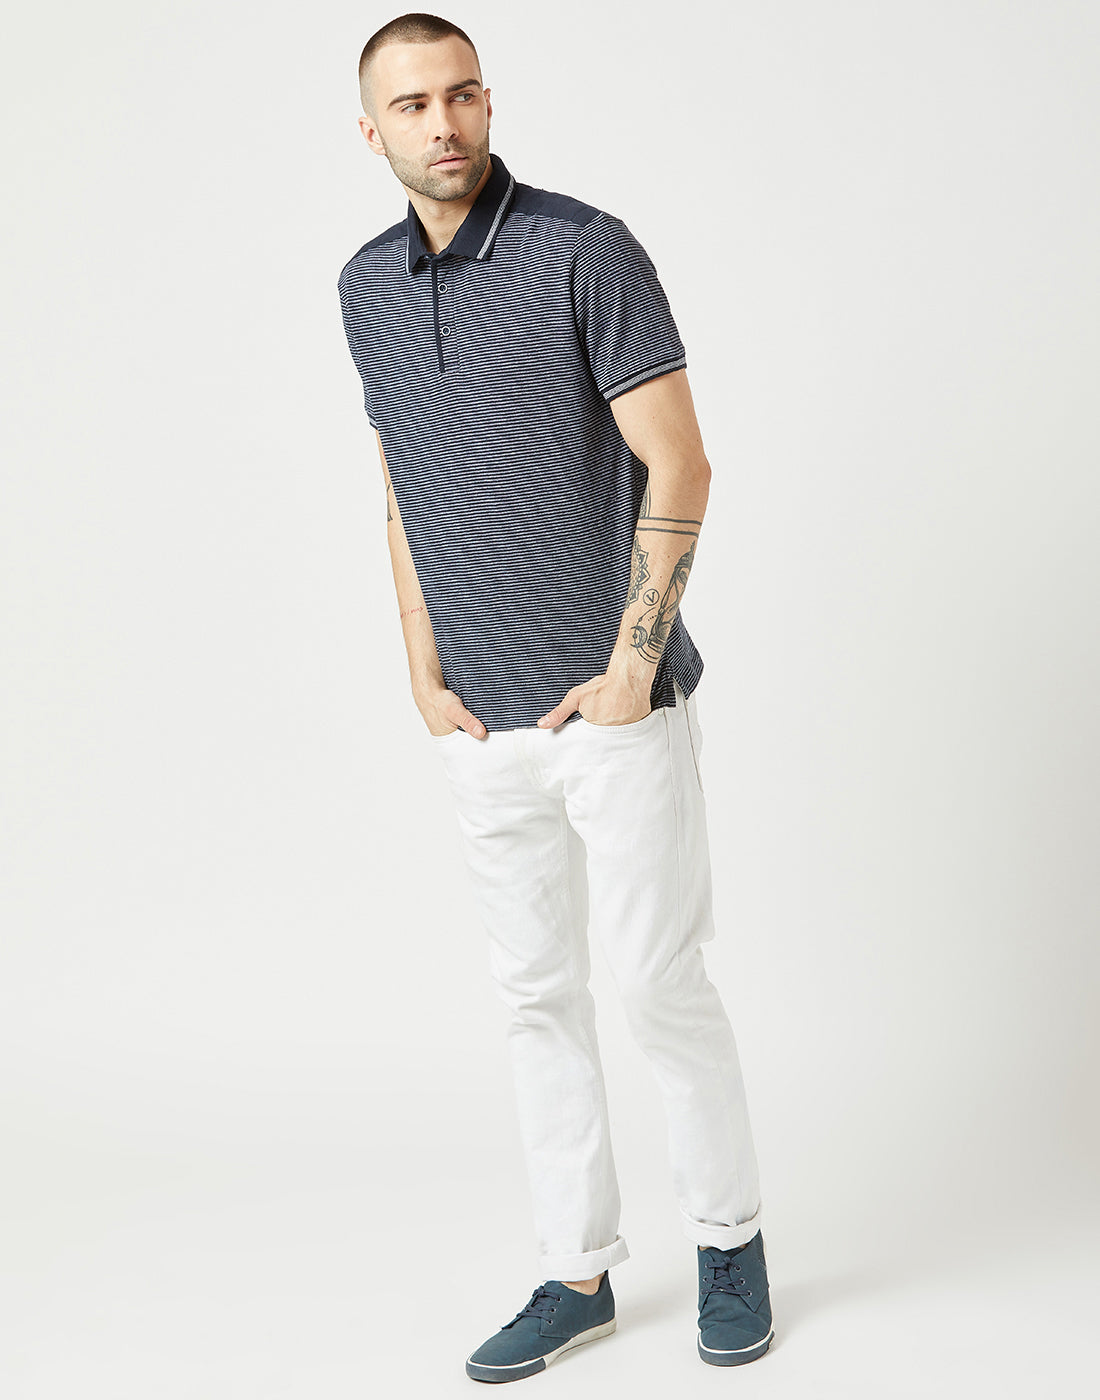 Octave Men Navy Printed Polo Tshirt